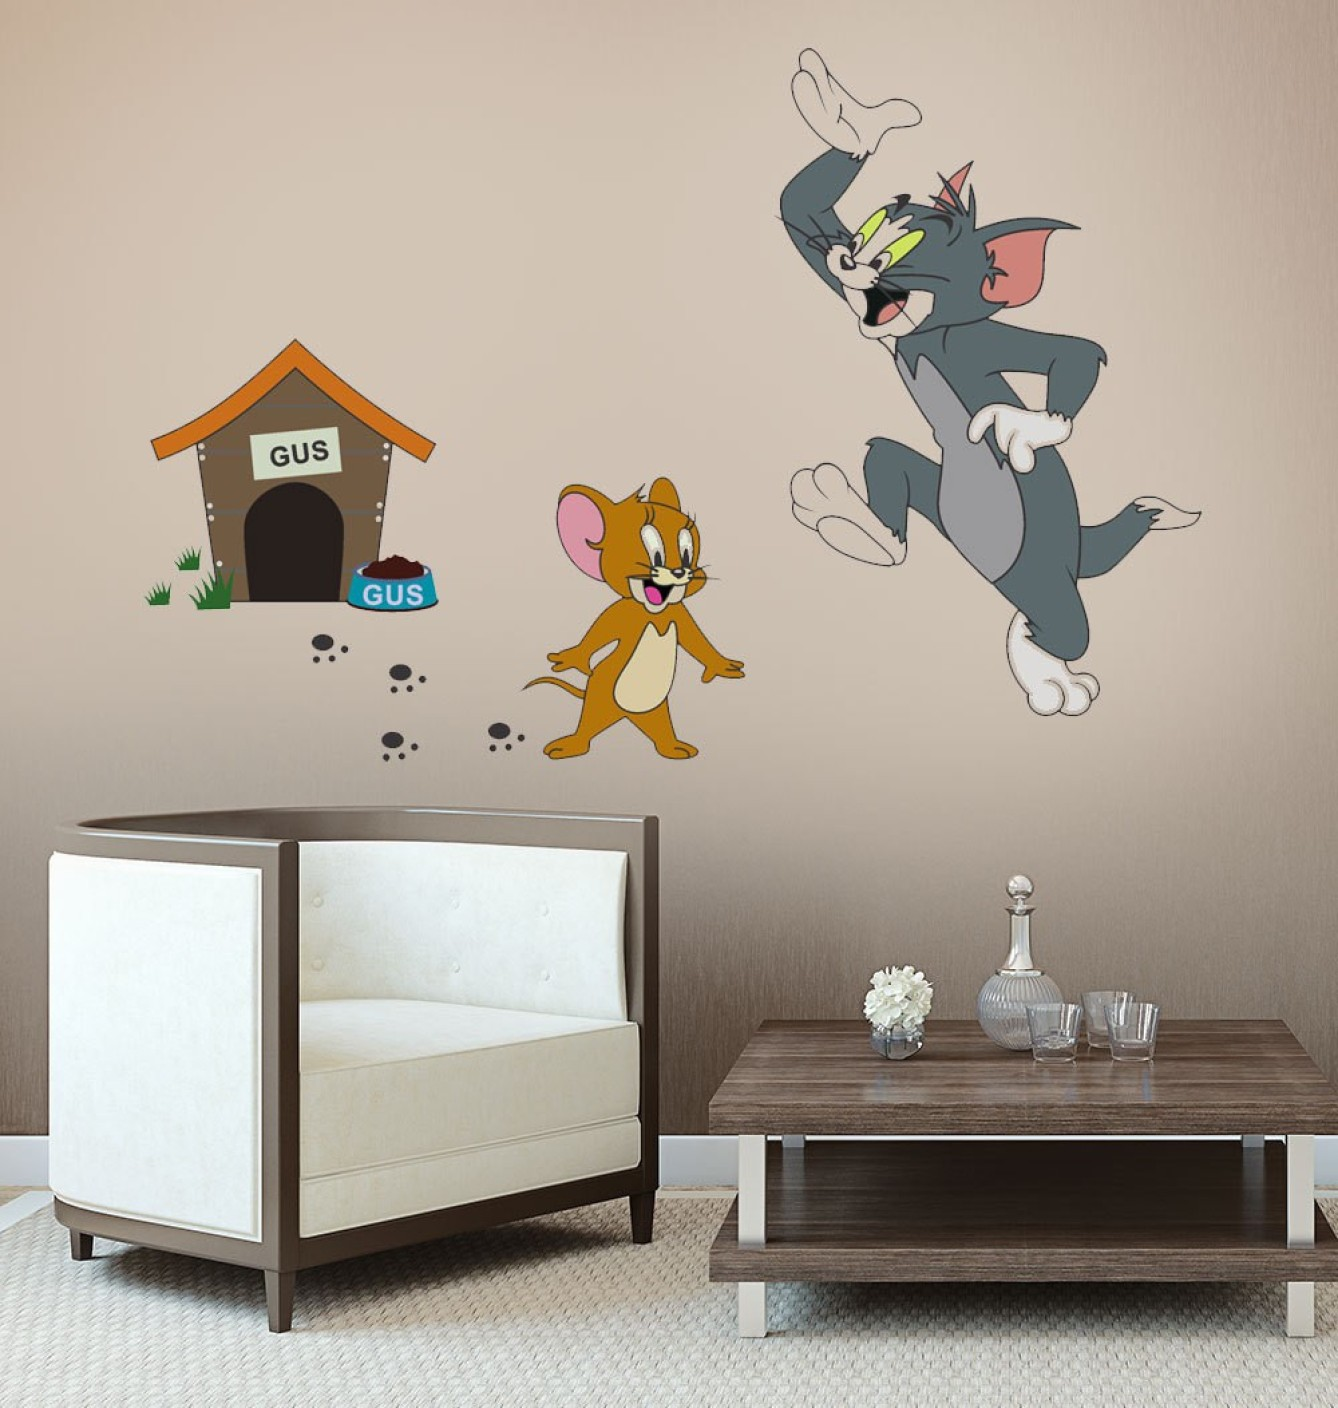 New Way Decals Wall Sticker Comics Wallpaper Price In